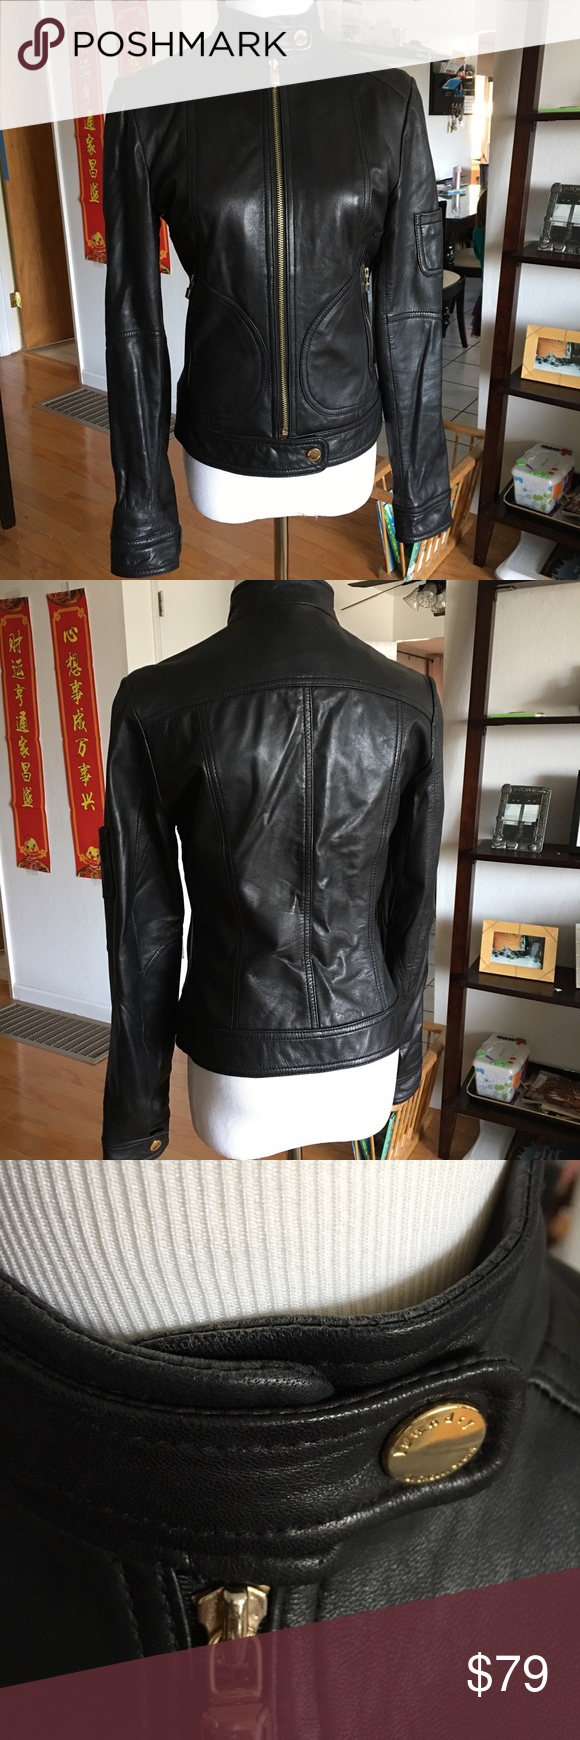 Laundry Leather Motorcycle Jacket Sz XS Genuine leather. Beautiful black leather motorcycle jacket with gold metallic snap closure at the neck, waist and sleeves. Overall in good condition with minor wear at the neck and sleeves. Sz XS. Smoke/pet free home. Laundry by Shelli Segal Jackets & Coats Blazers